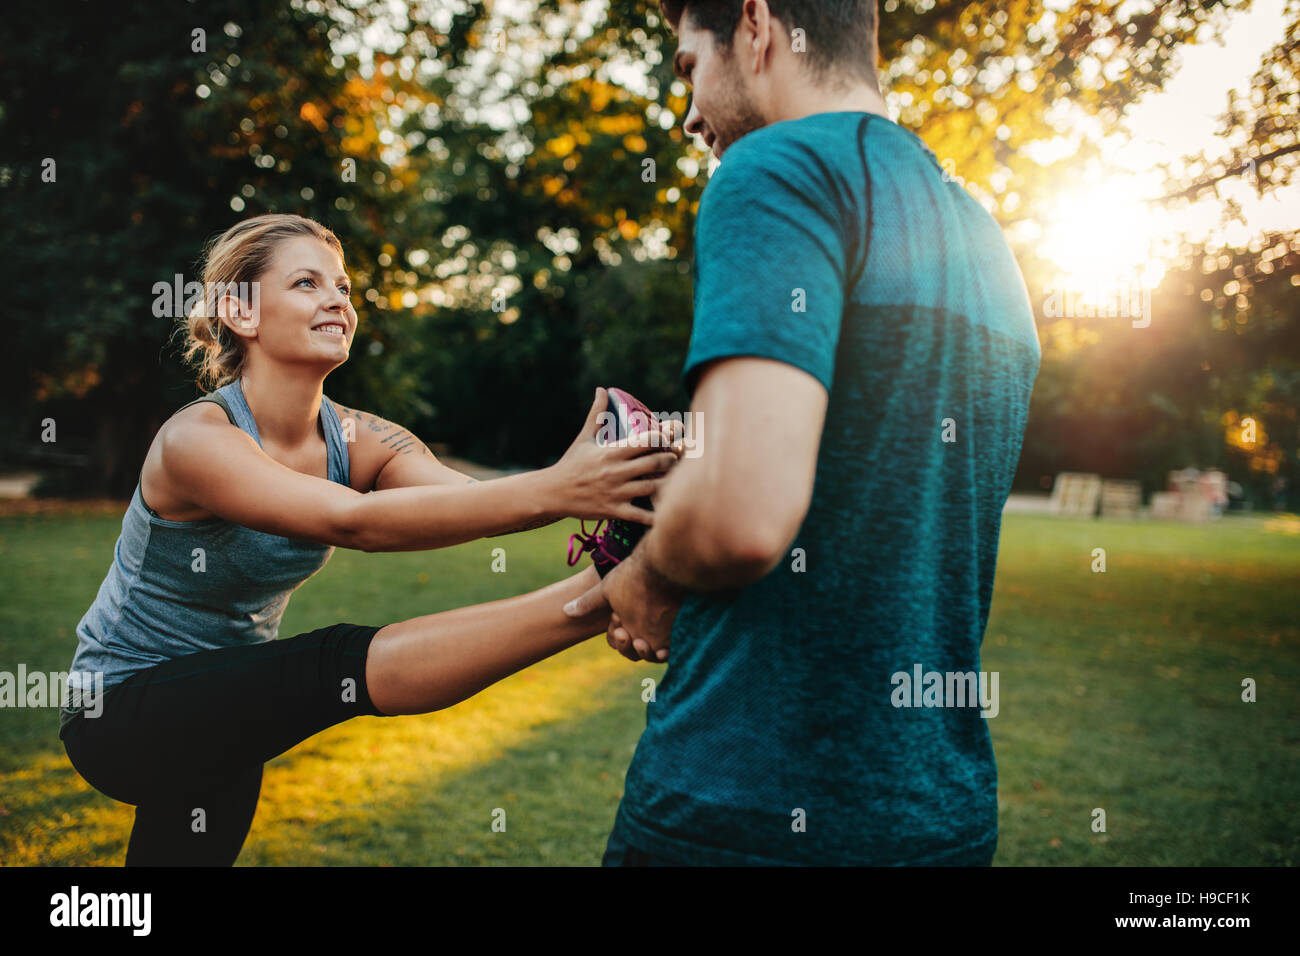 Male physical trainer assisting woman with leg exercise. Young woman being assisted by personal trainer in stretching - Stock Image